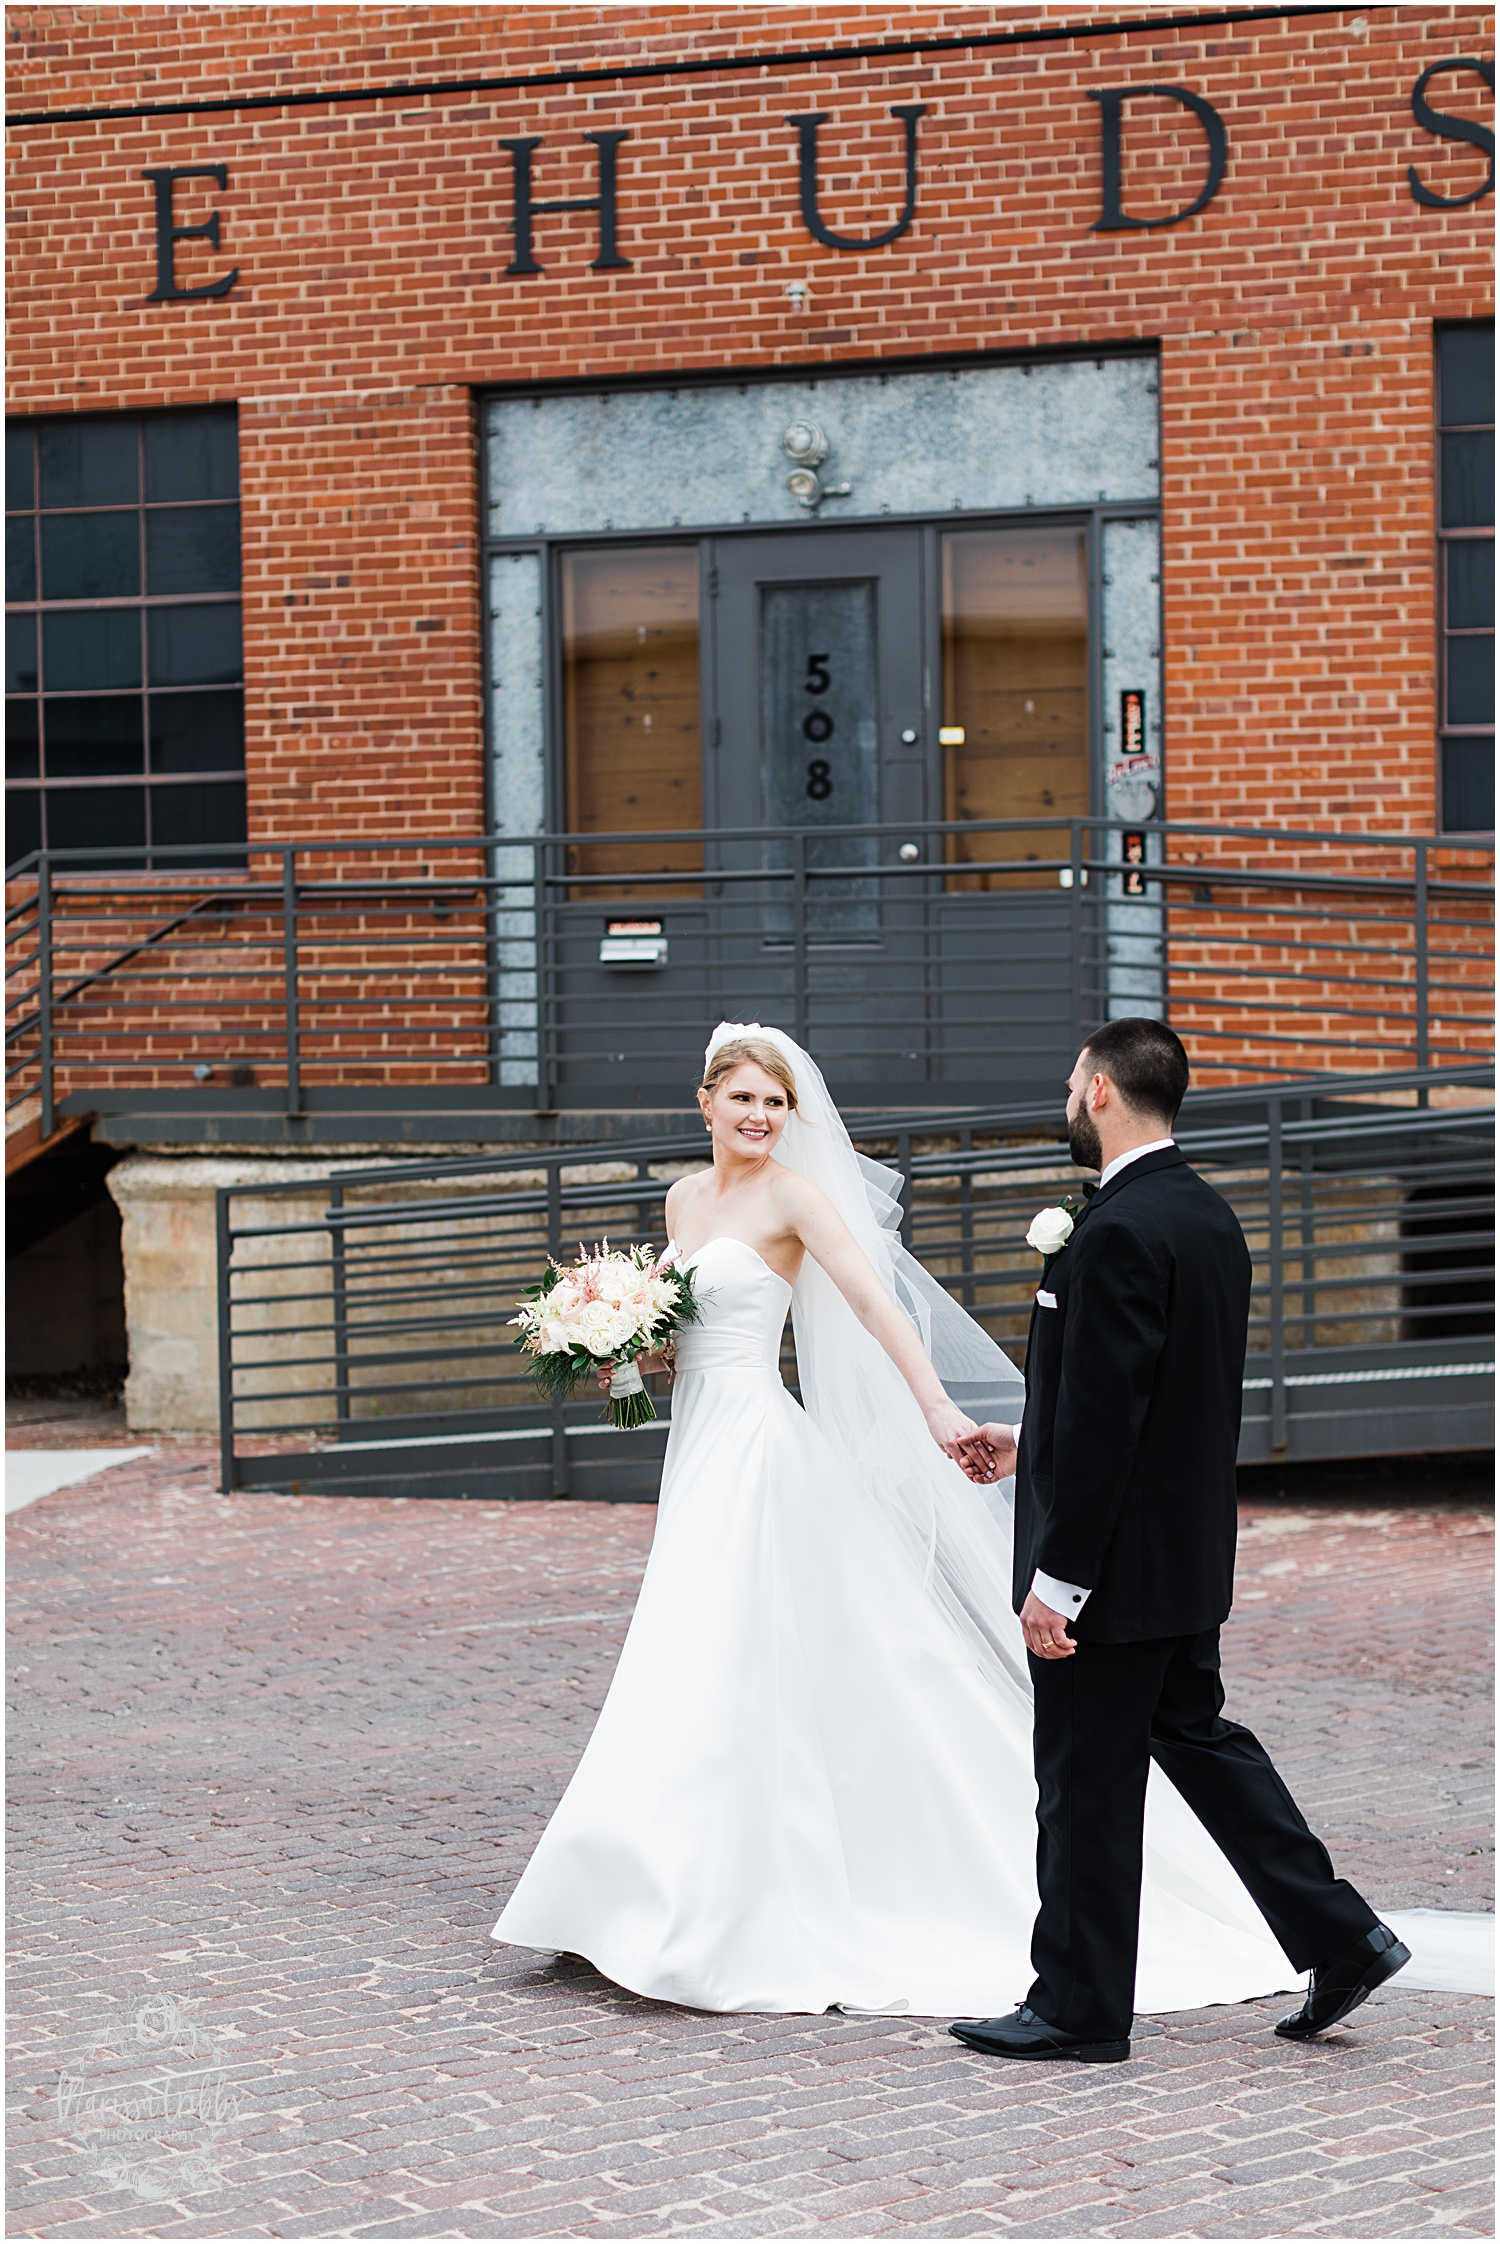 ABBY & CHARLIE WEDDING | THE HUDSON EVENT SPACE WEDDING | MARISSA CRIBBS PHOTOGRAPHY_7511.jpg